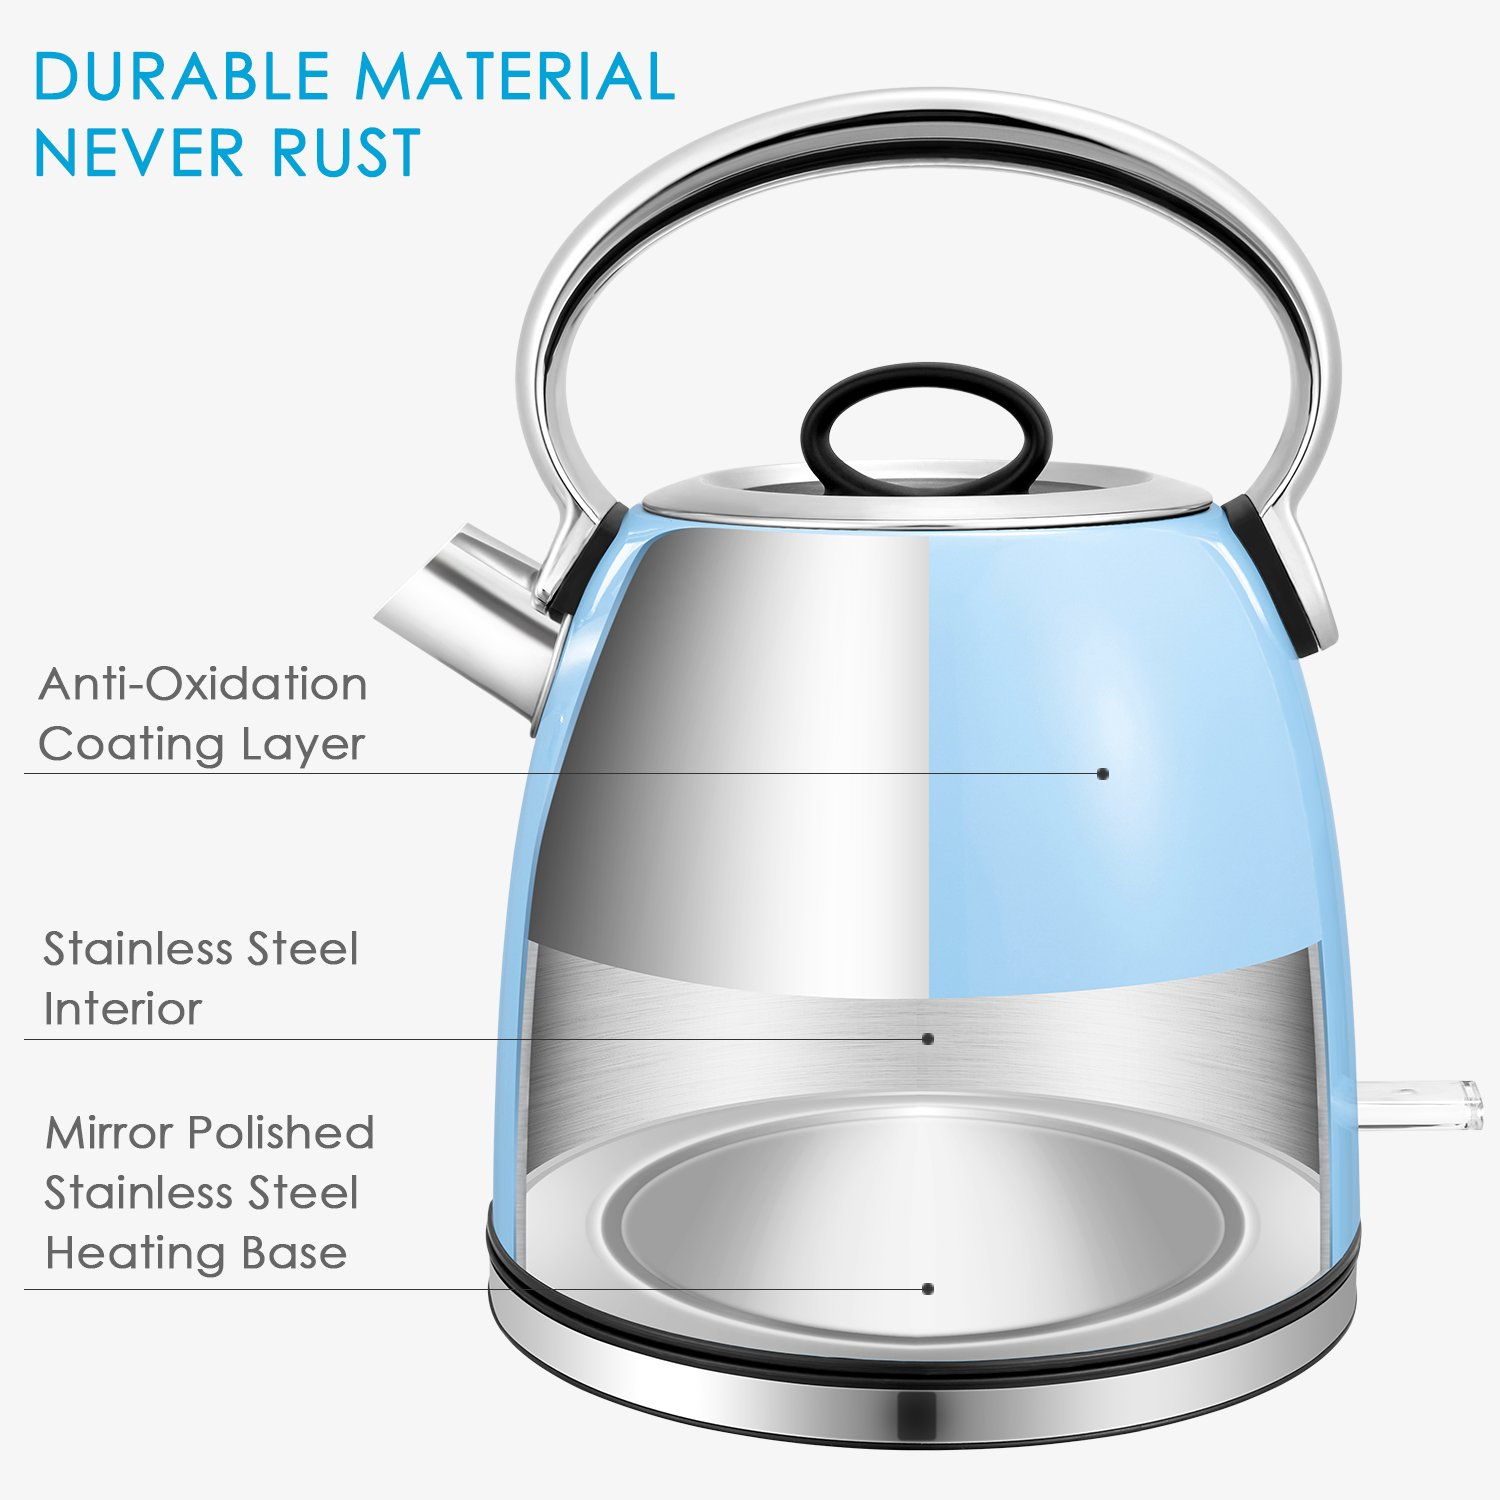 Electric Kettle Retro Electric Tea Kettle BPA free , 1500W Rapid Water Boiler, Cordless Dome Kettle with Detachable Mesh Filter, British Strix for Auto off and Boil Dry Protection, 1.7L, Aicok Retro Series